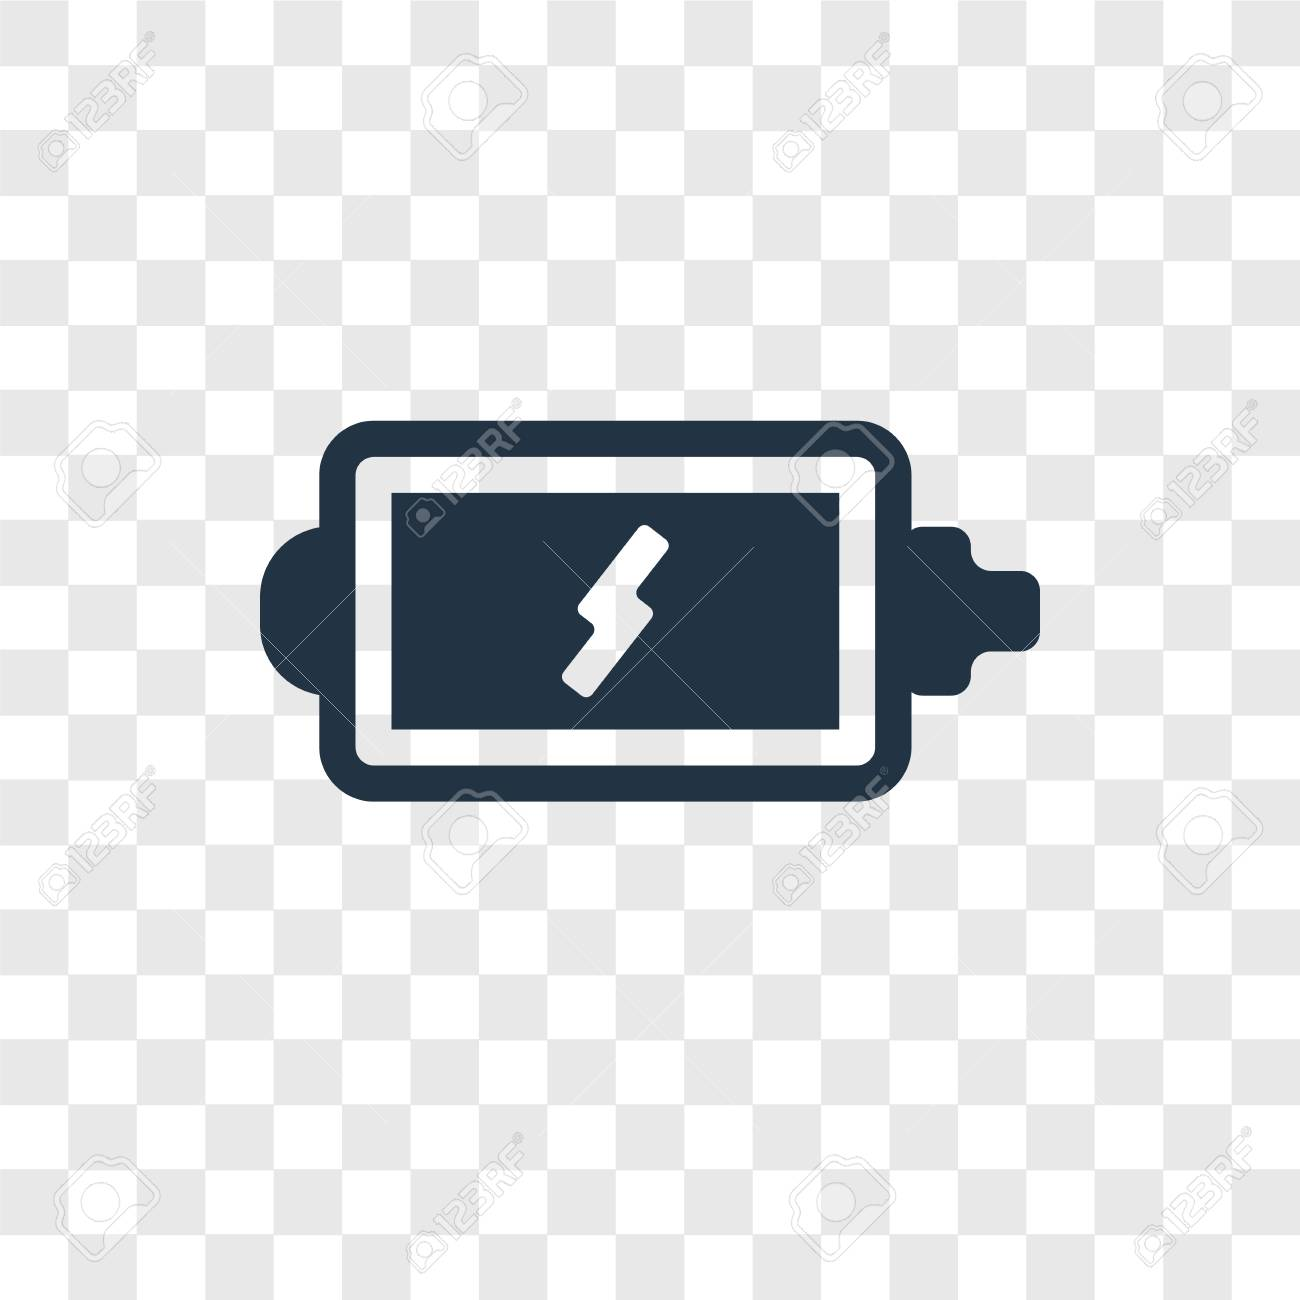 charging battery vector icon isolated on transparent background royalty free cliparts vectors and stock illustration image 112359740 charging battery vector icon isolated on transparent background